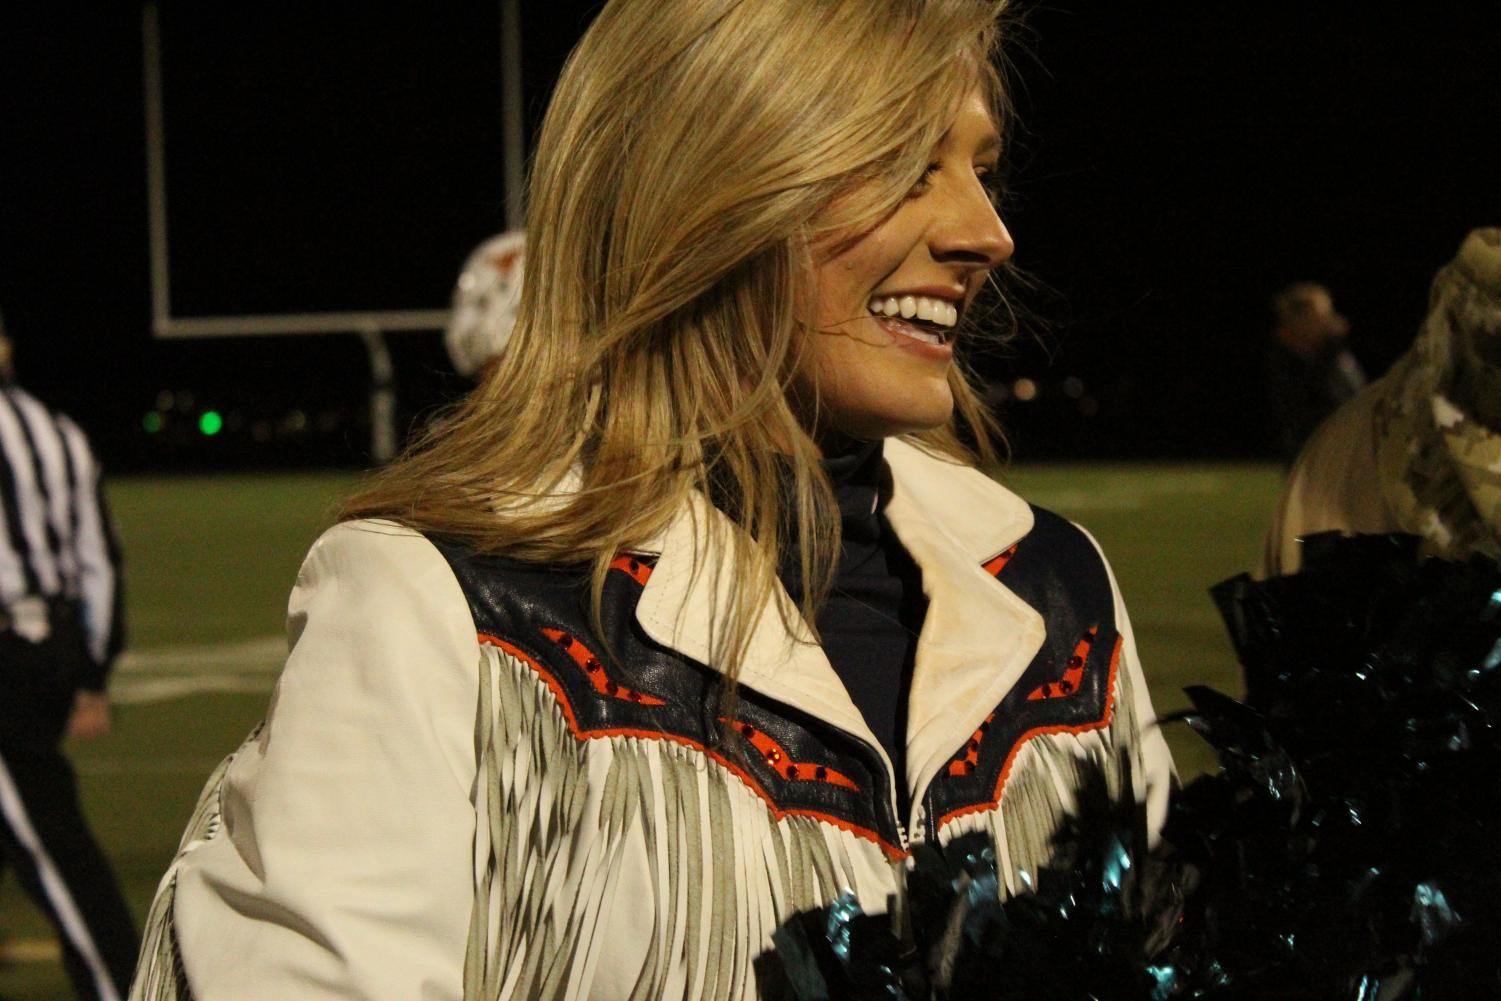 Broncos+cheerleader+walking+off+the+field+after+pre-game+show+at+Mead+High+School.